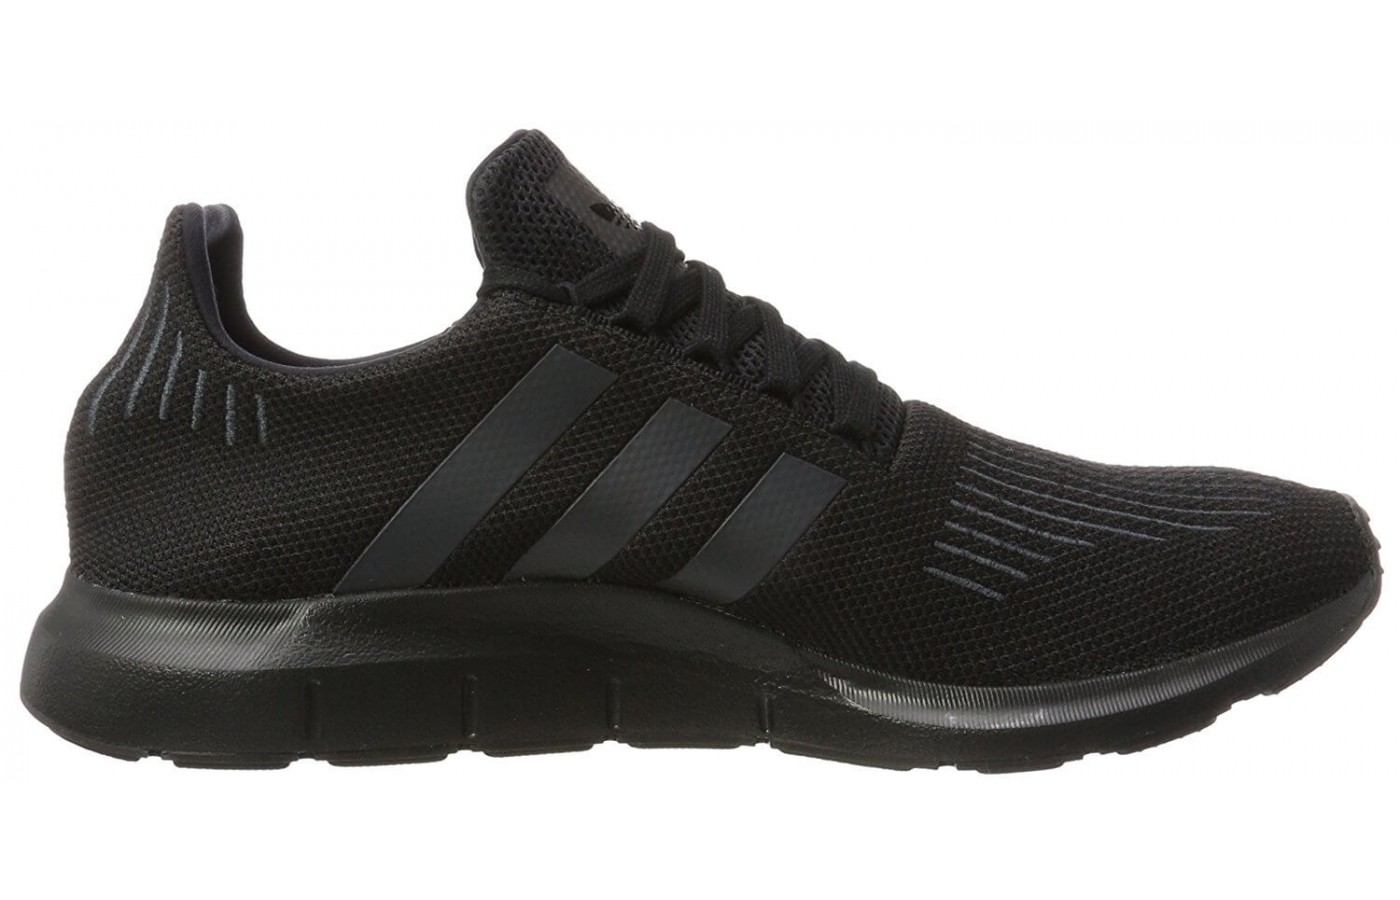 The Primeknit used for the Adidas Swiftrun Primeknit upper is lightweight and highly breathable.